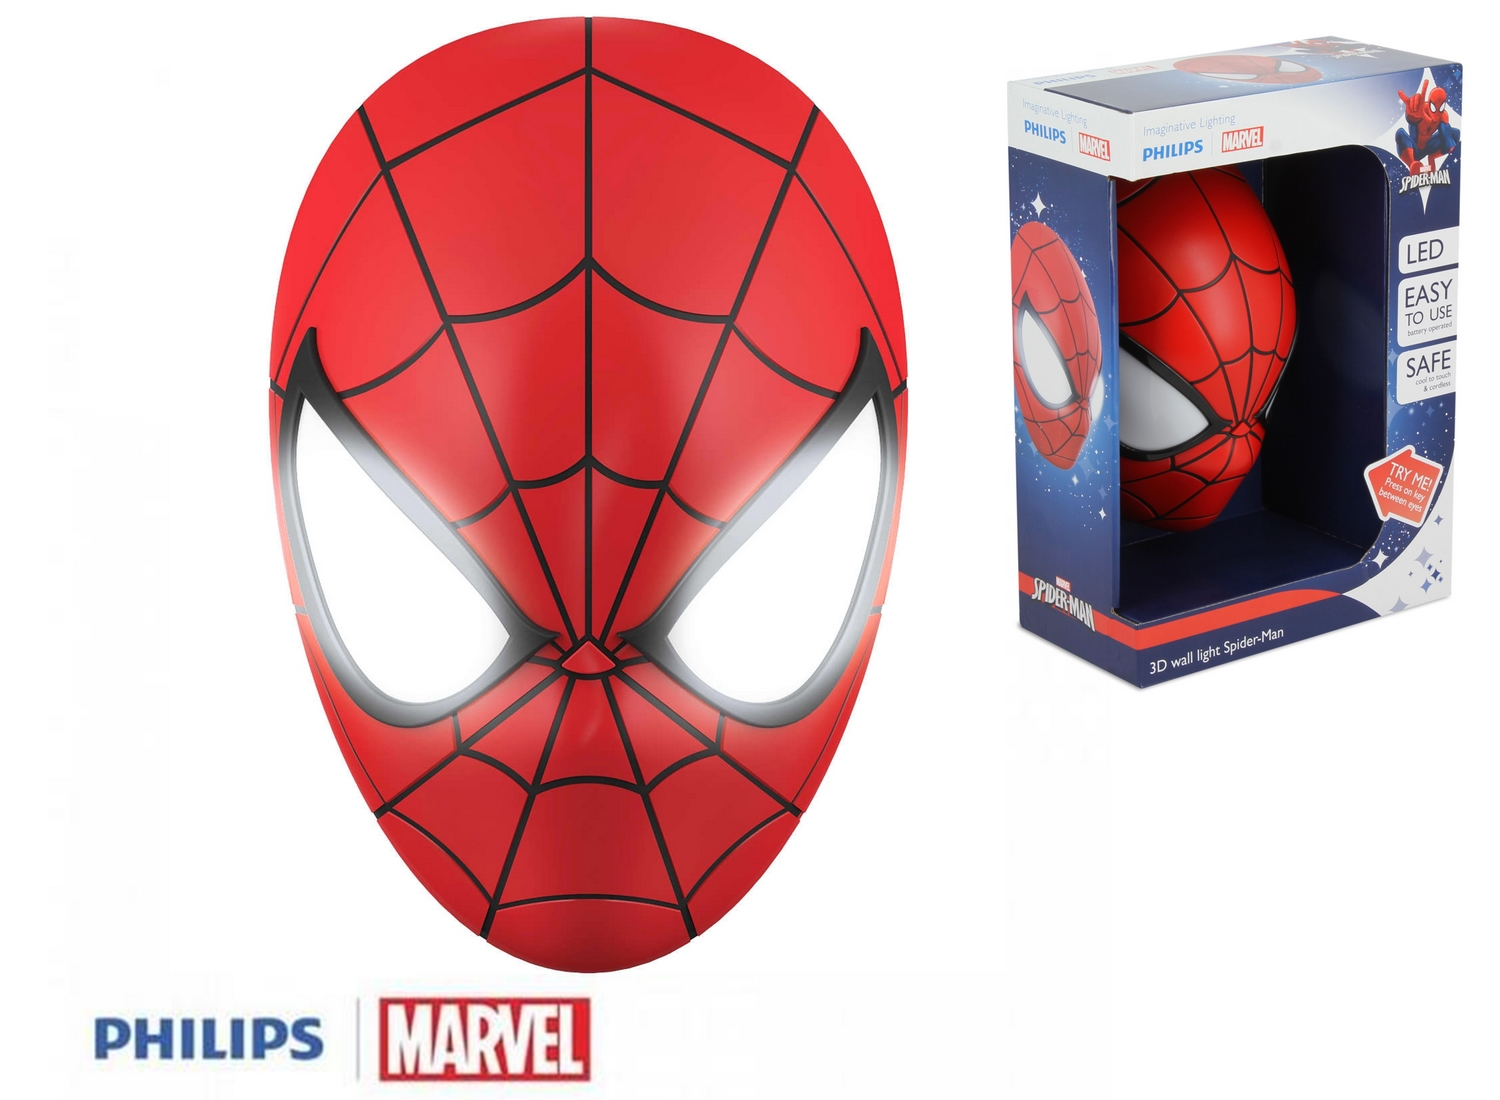 MARVEL - Applique Murale 3D Spider-Man